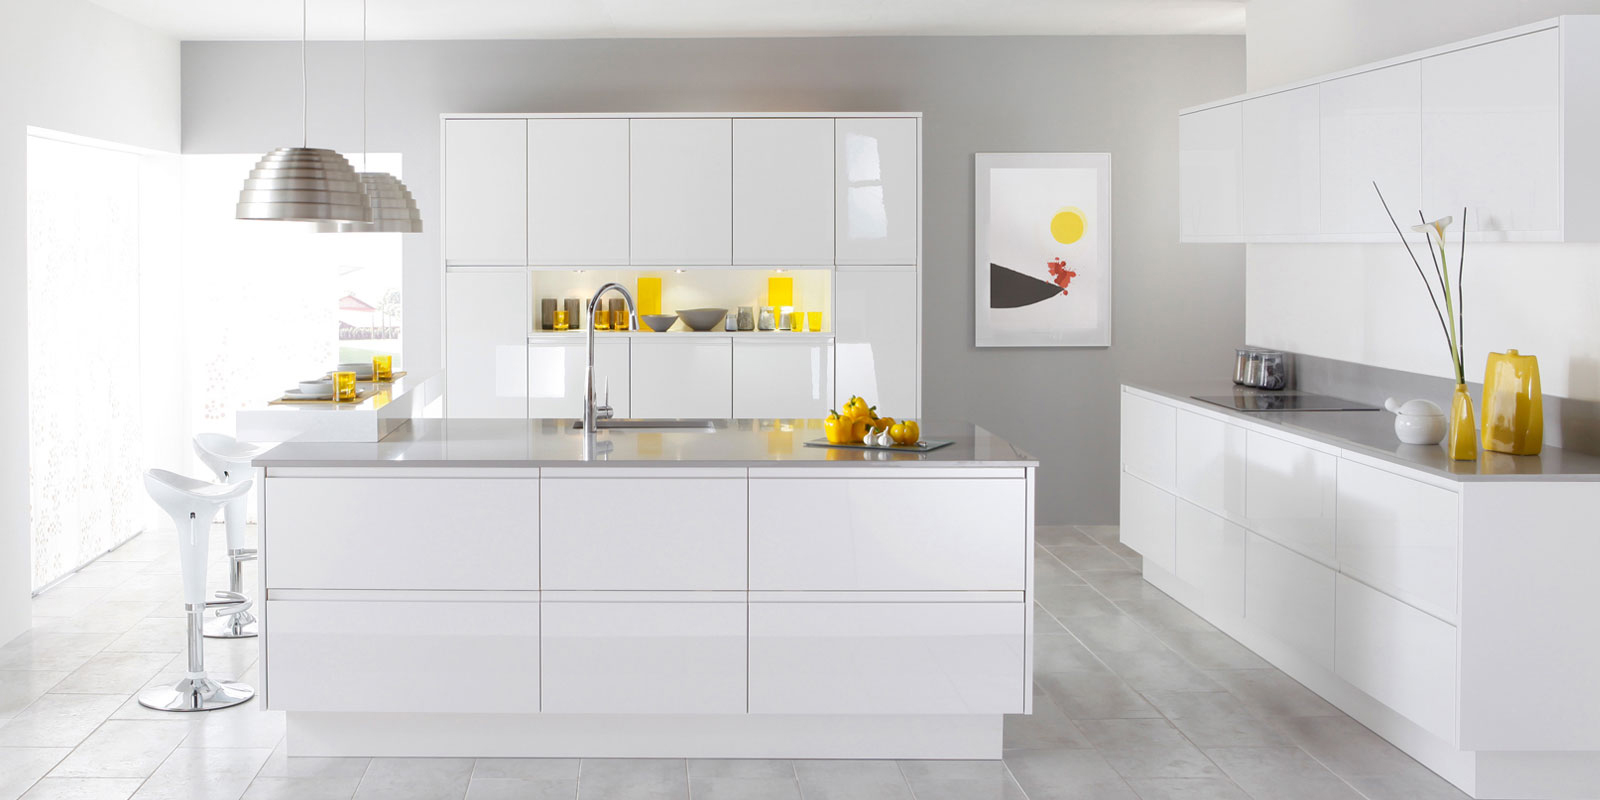 25 Latest Design Ideas Of Modular Kitchen Pictures Images Amp Catalogue Youme And Trends